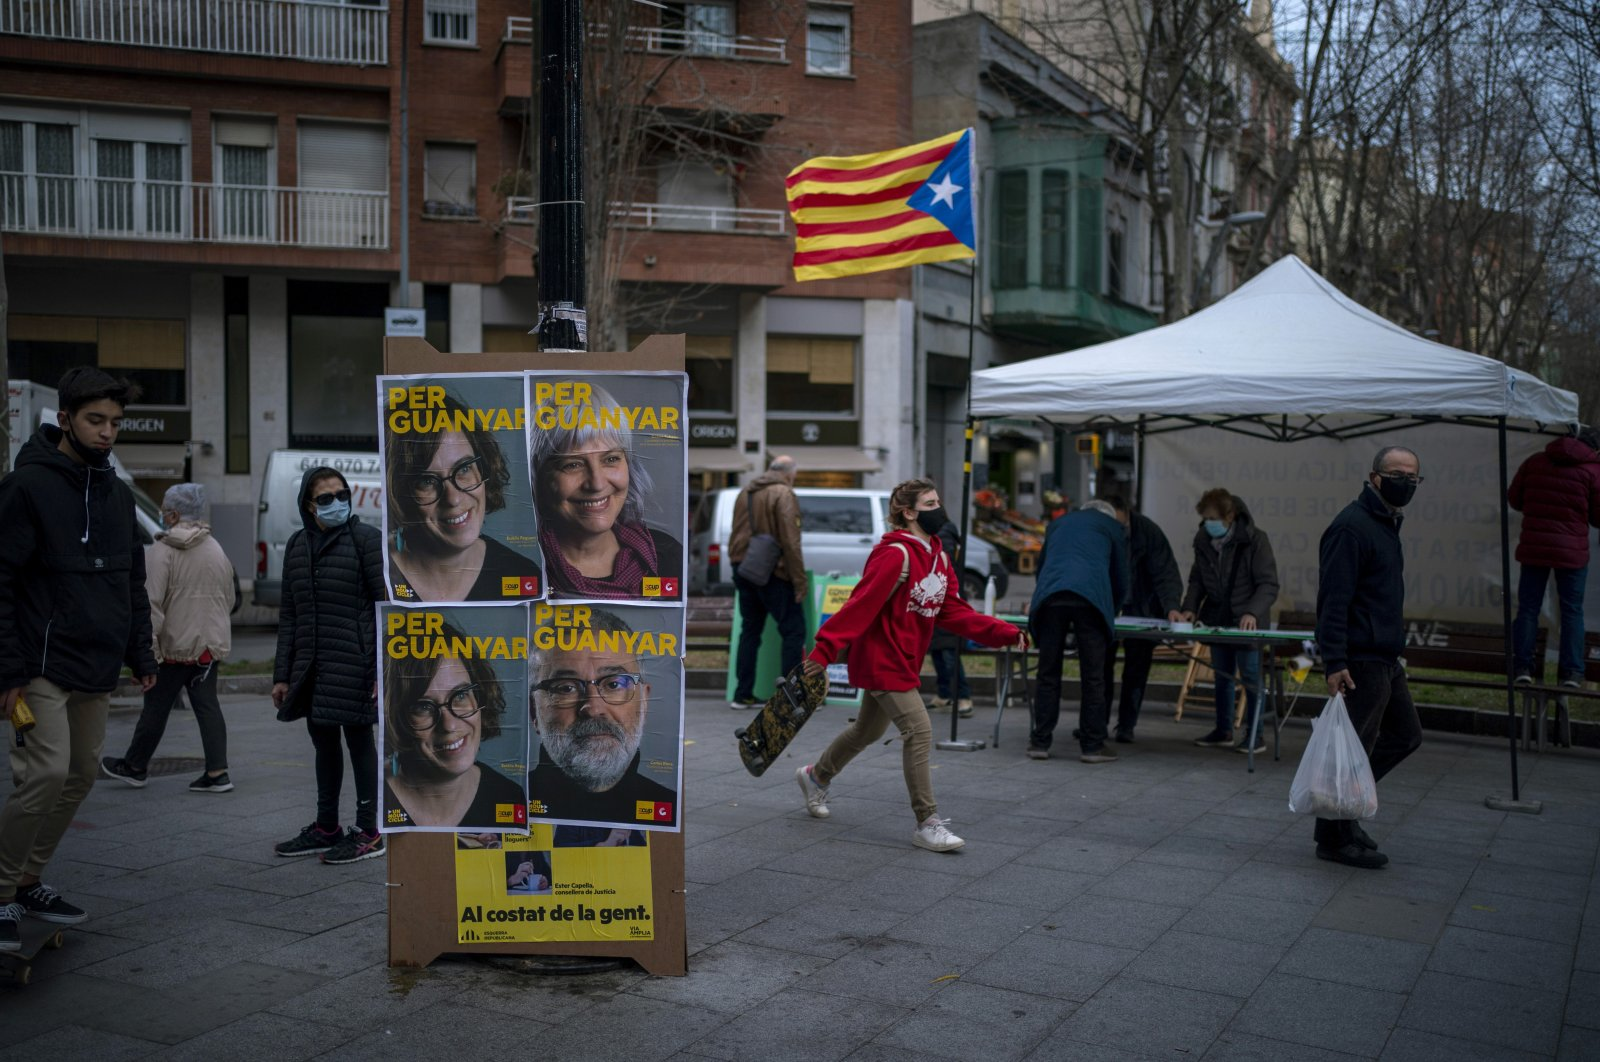 Pedestrians walk past electoral posters with portraits of candidates for the upcoming regional election in Barcelona, Spain, Jan. 30, 2021. (AP Photo)